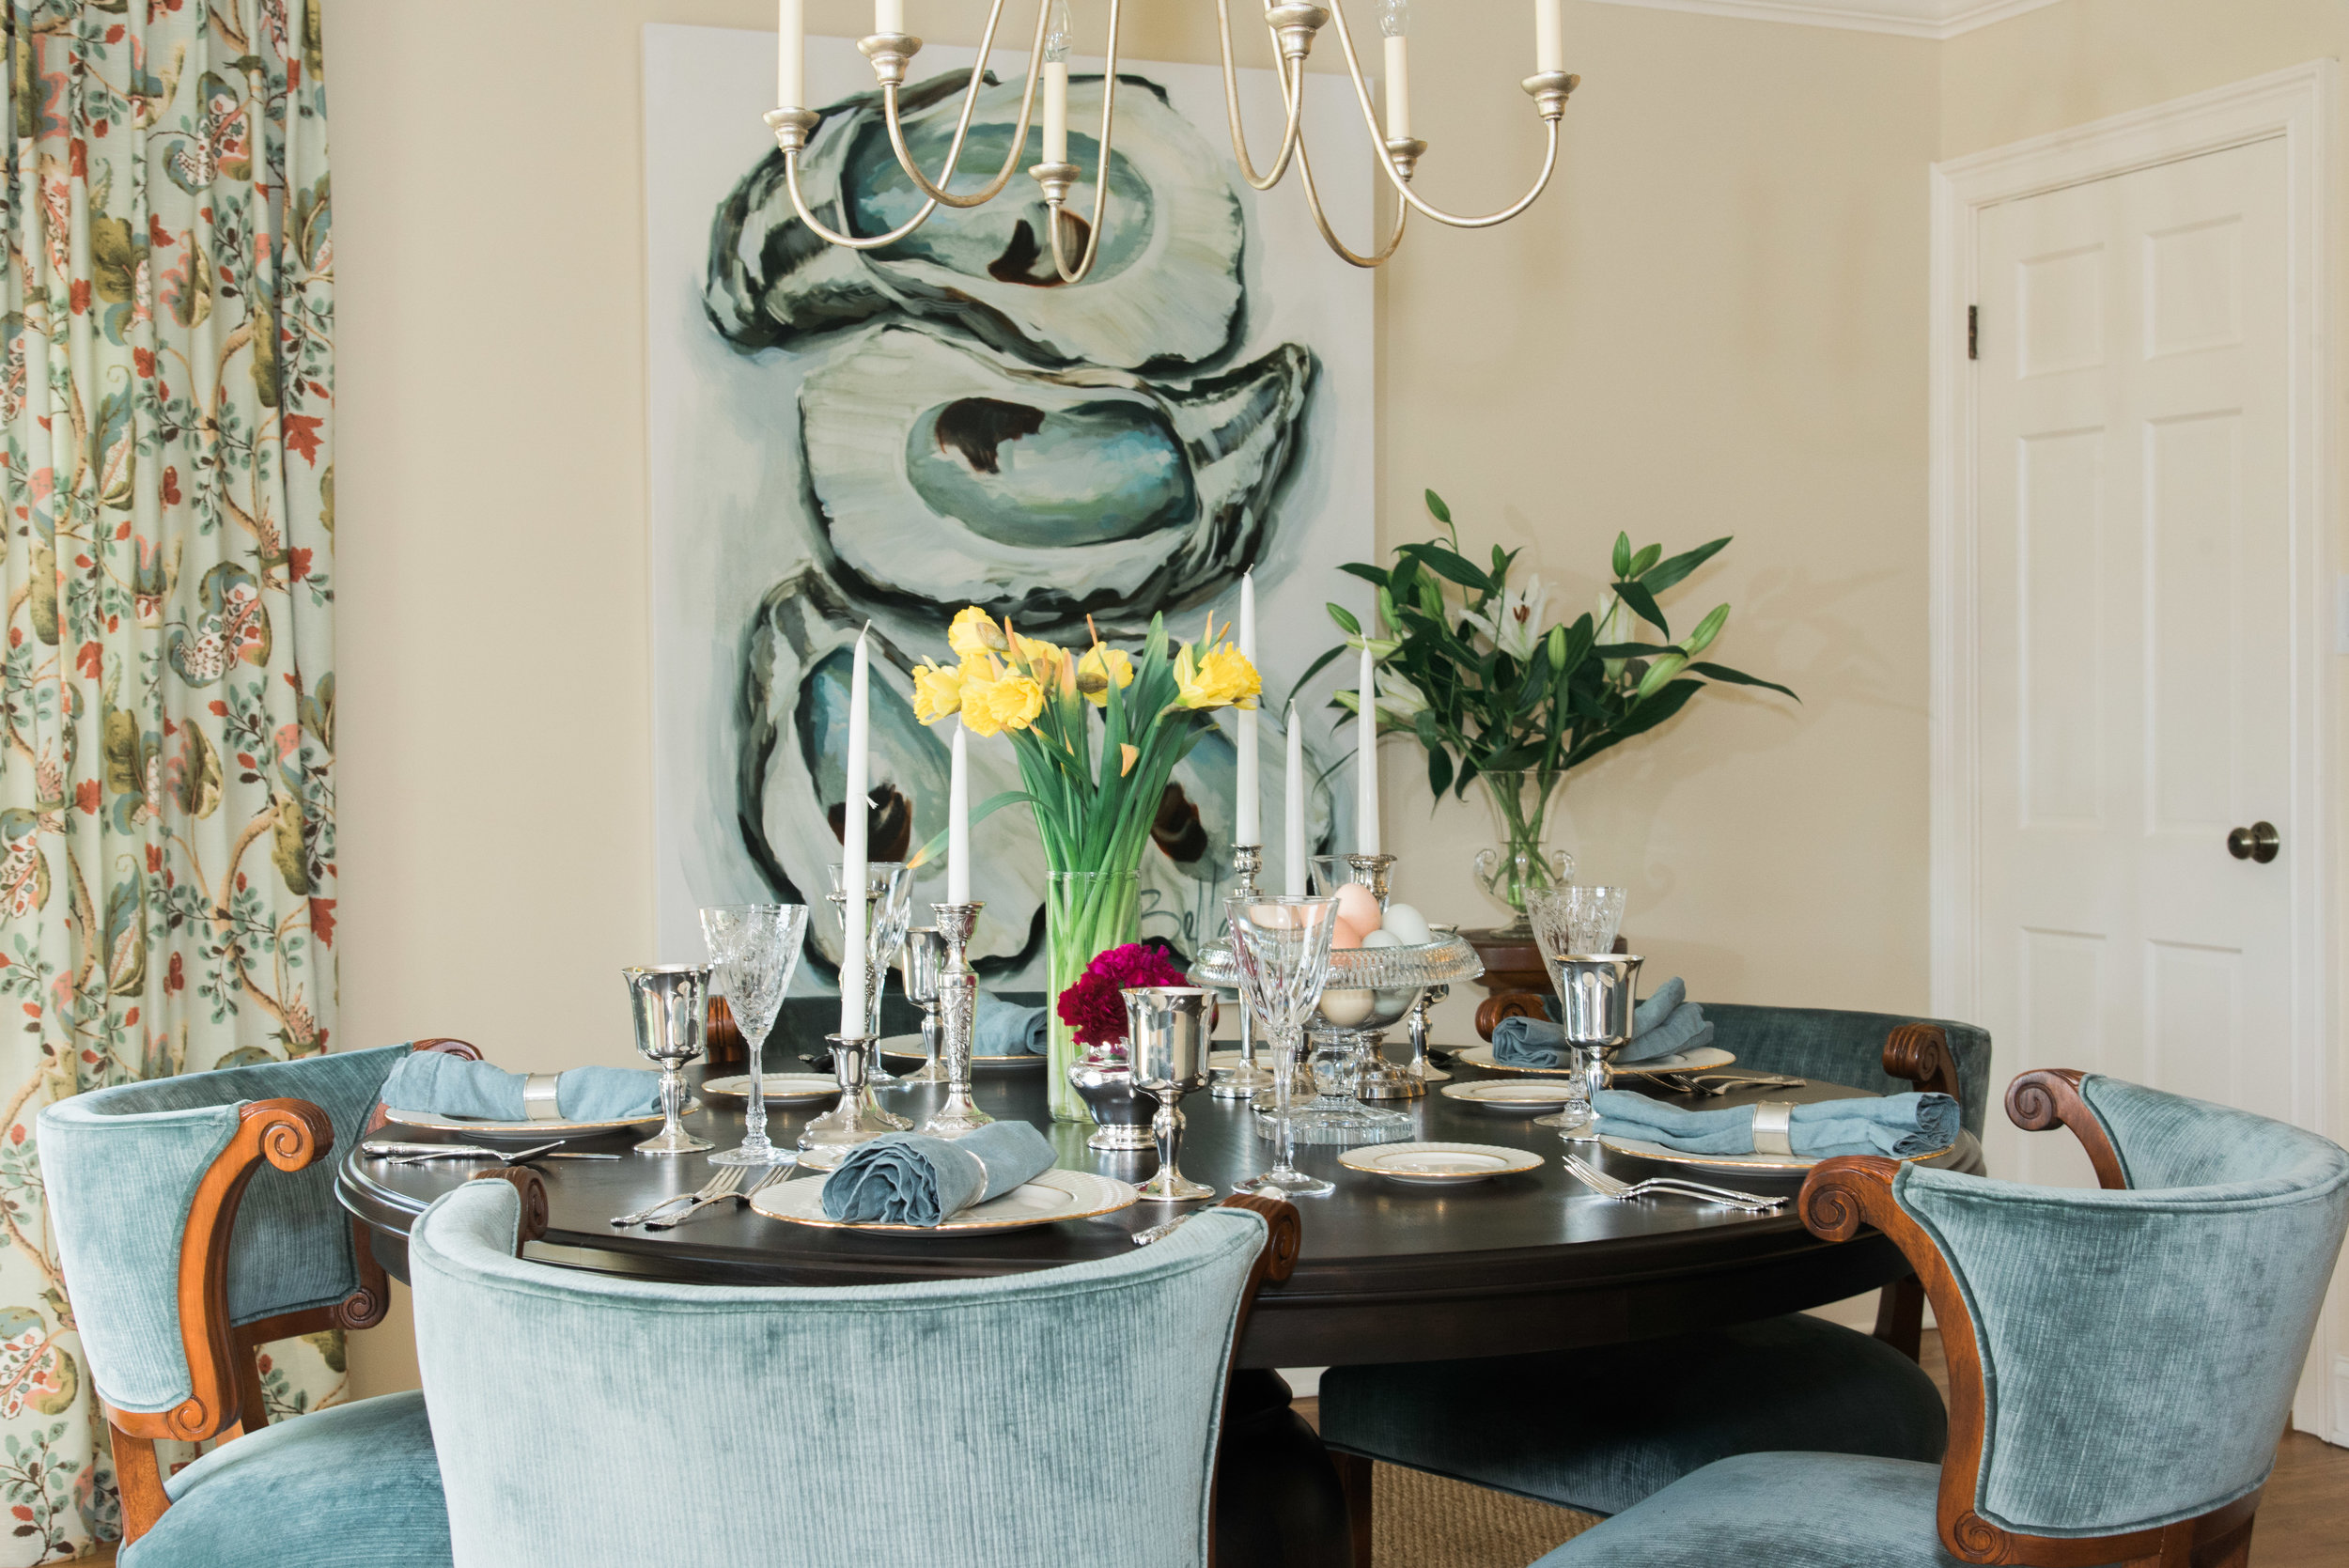 Like the house, this table is luxurious without being overdressed.     Artwork:  Bellamy   |   Chairs:  H  ickory Chair   | Chair Fabric:  Pollack   |   Table: Custom design by Calvert Dean Design|    Chandelier:  Currey & Company